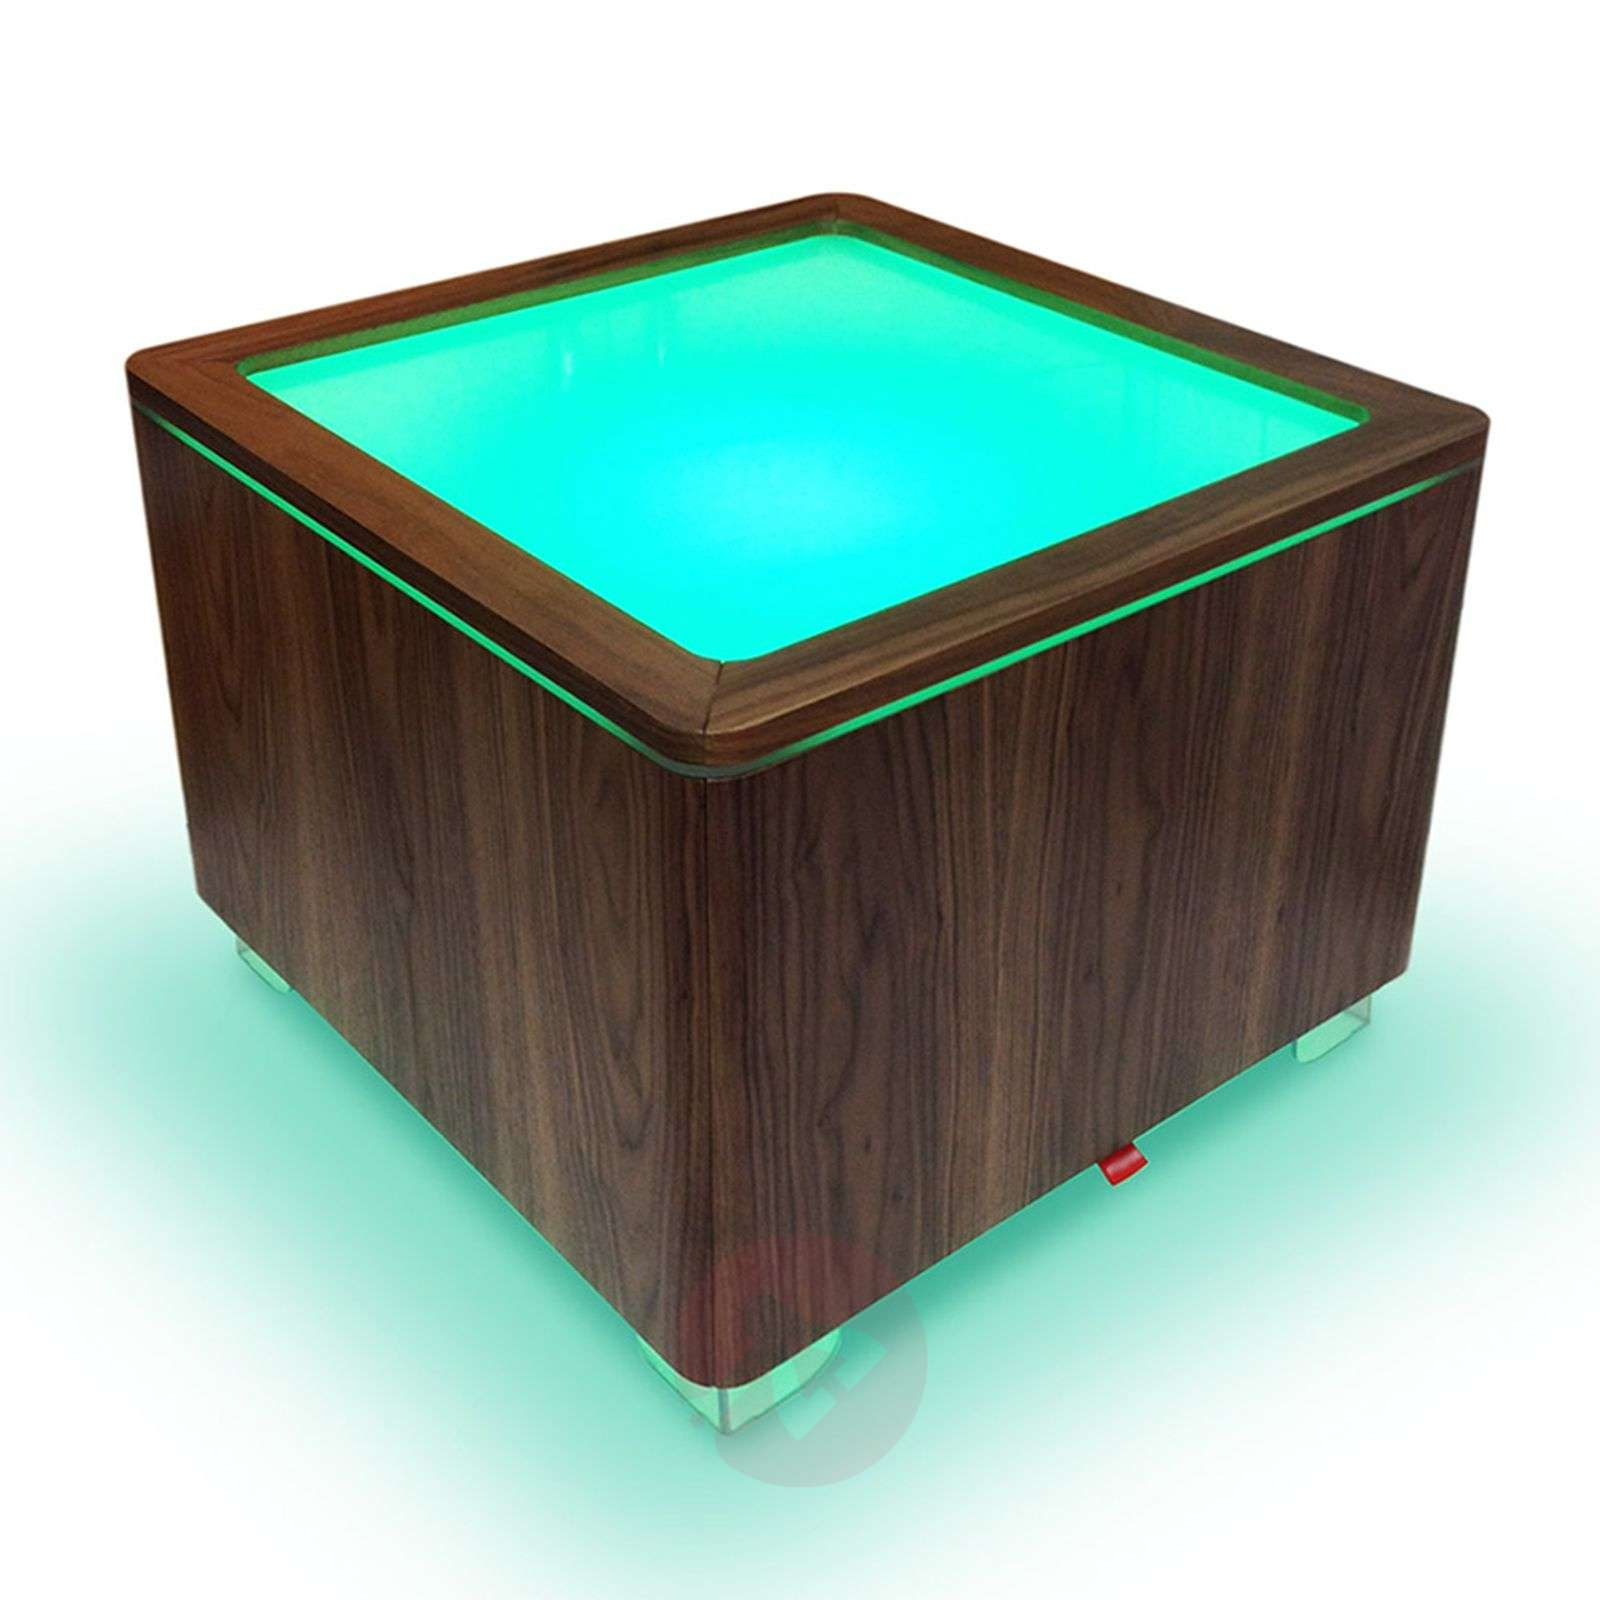 Luminous table Ora LED with a wooden body-6537092-05